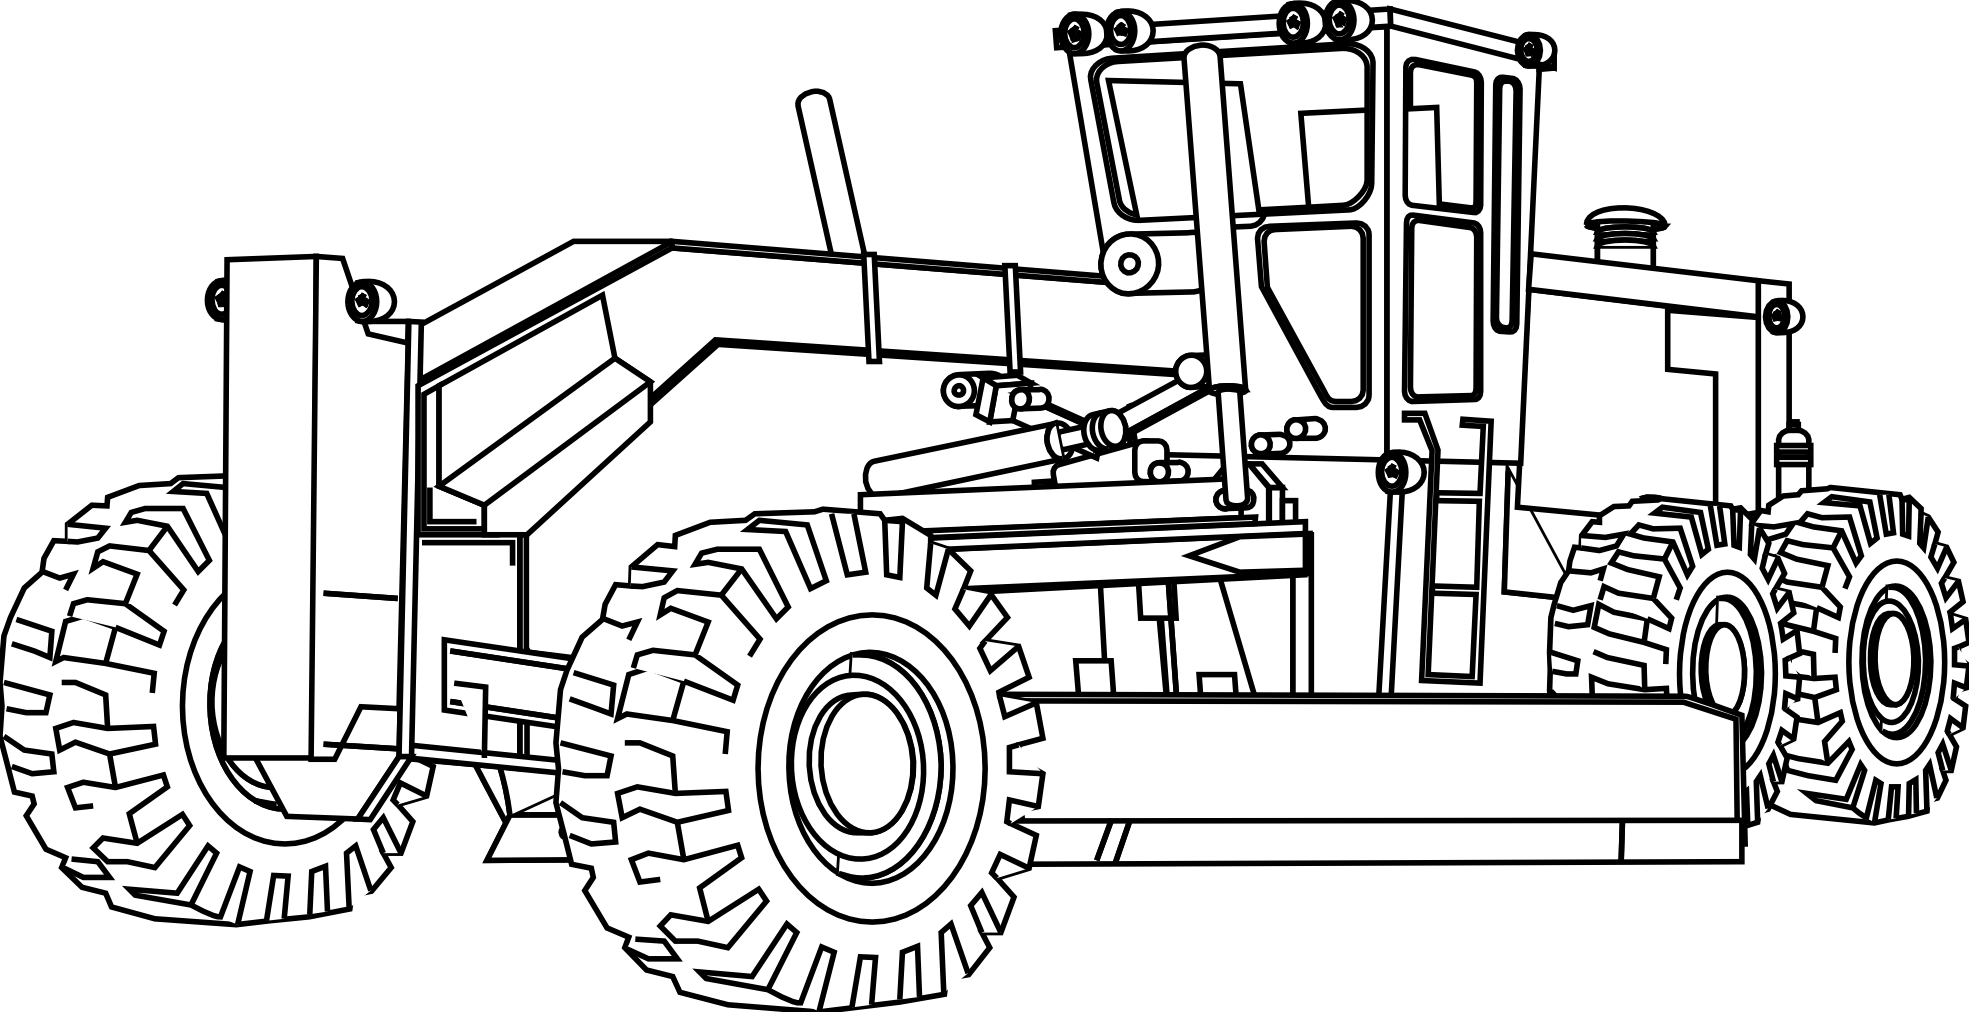 construction trucks coloring pages construction vehicles coloring pages download and print trucks pages coloring construction